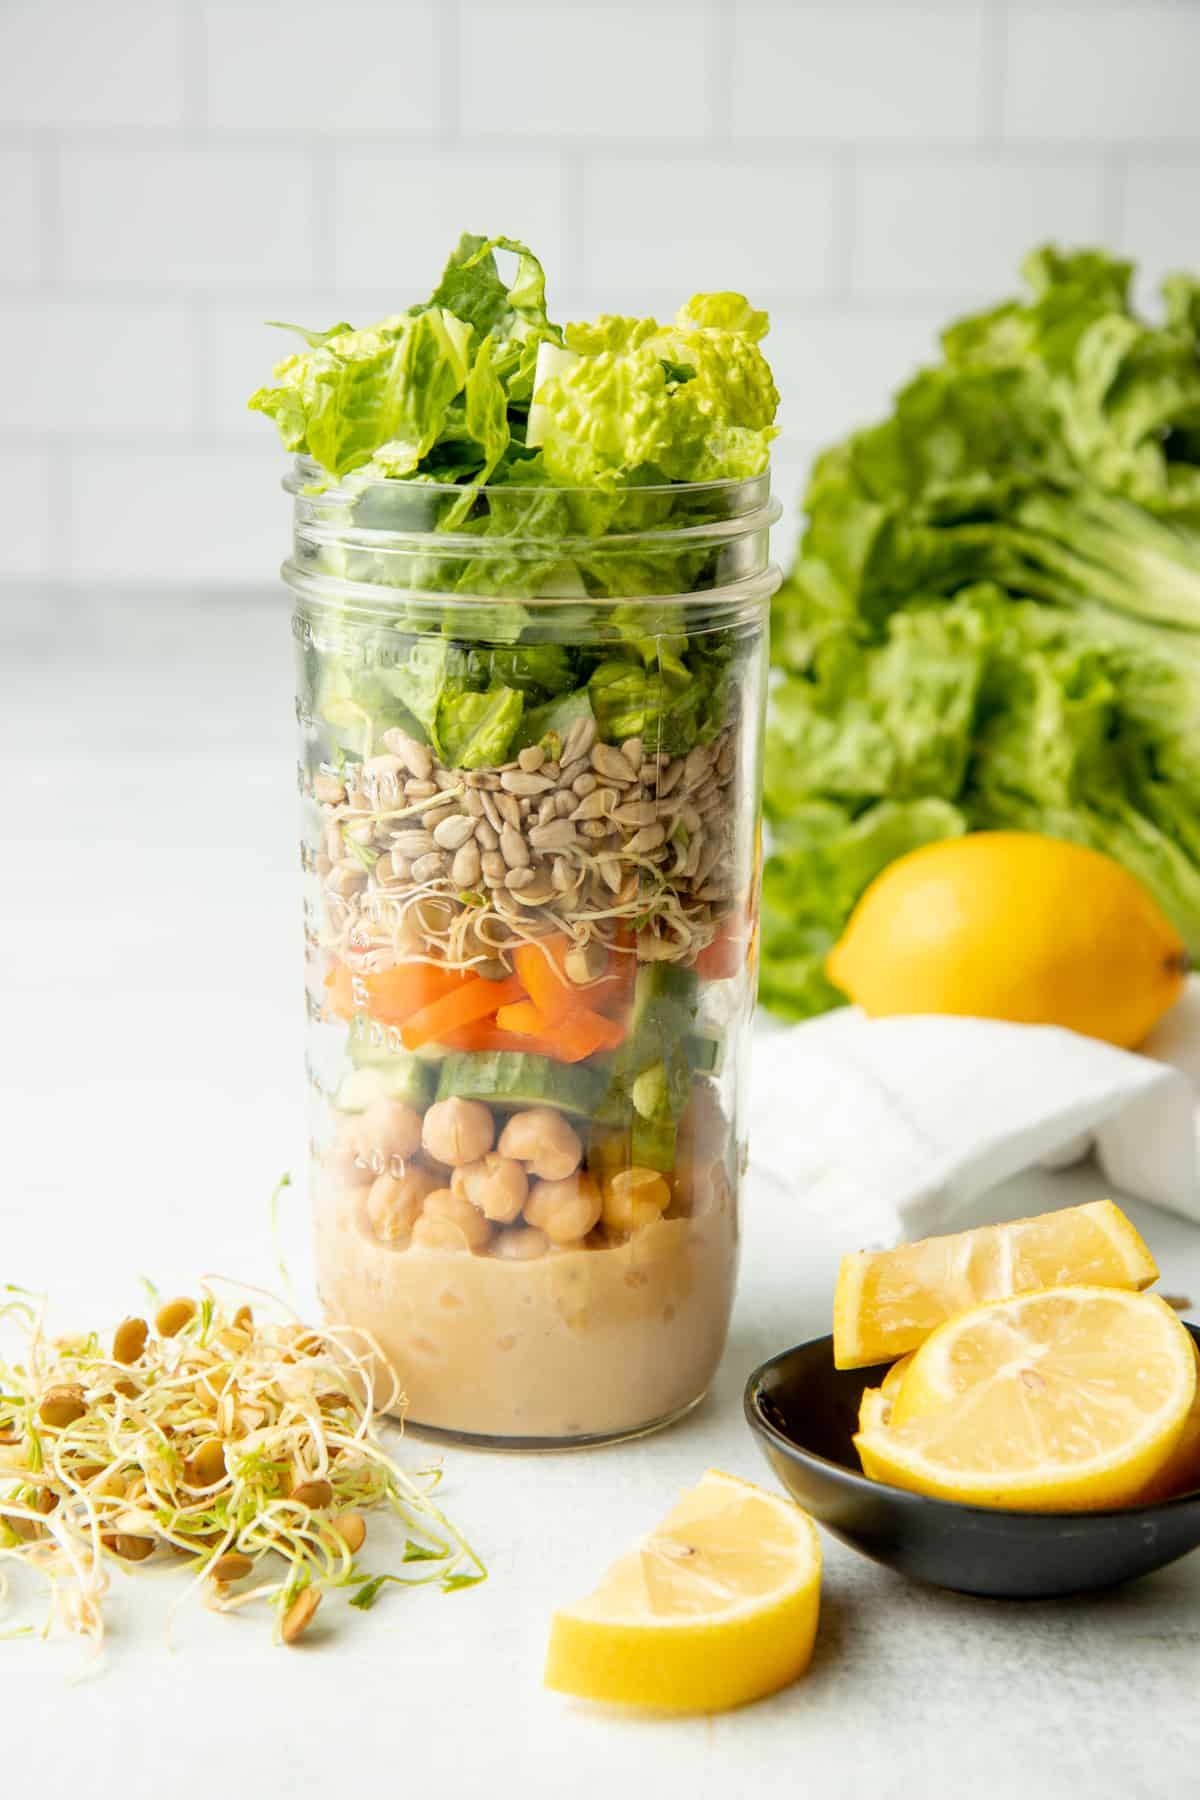 Glass mason jar filled with layers of components for a sesame chickpea salad, surrounded by extra ingredients.